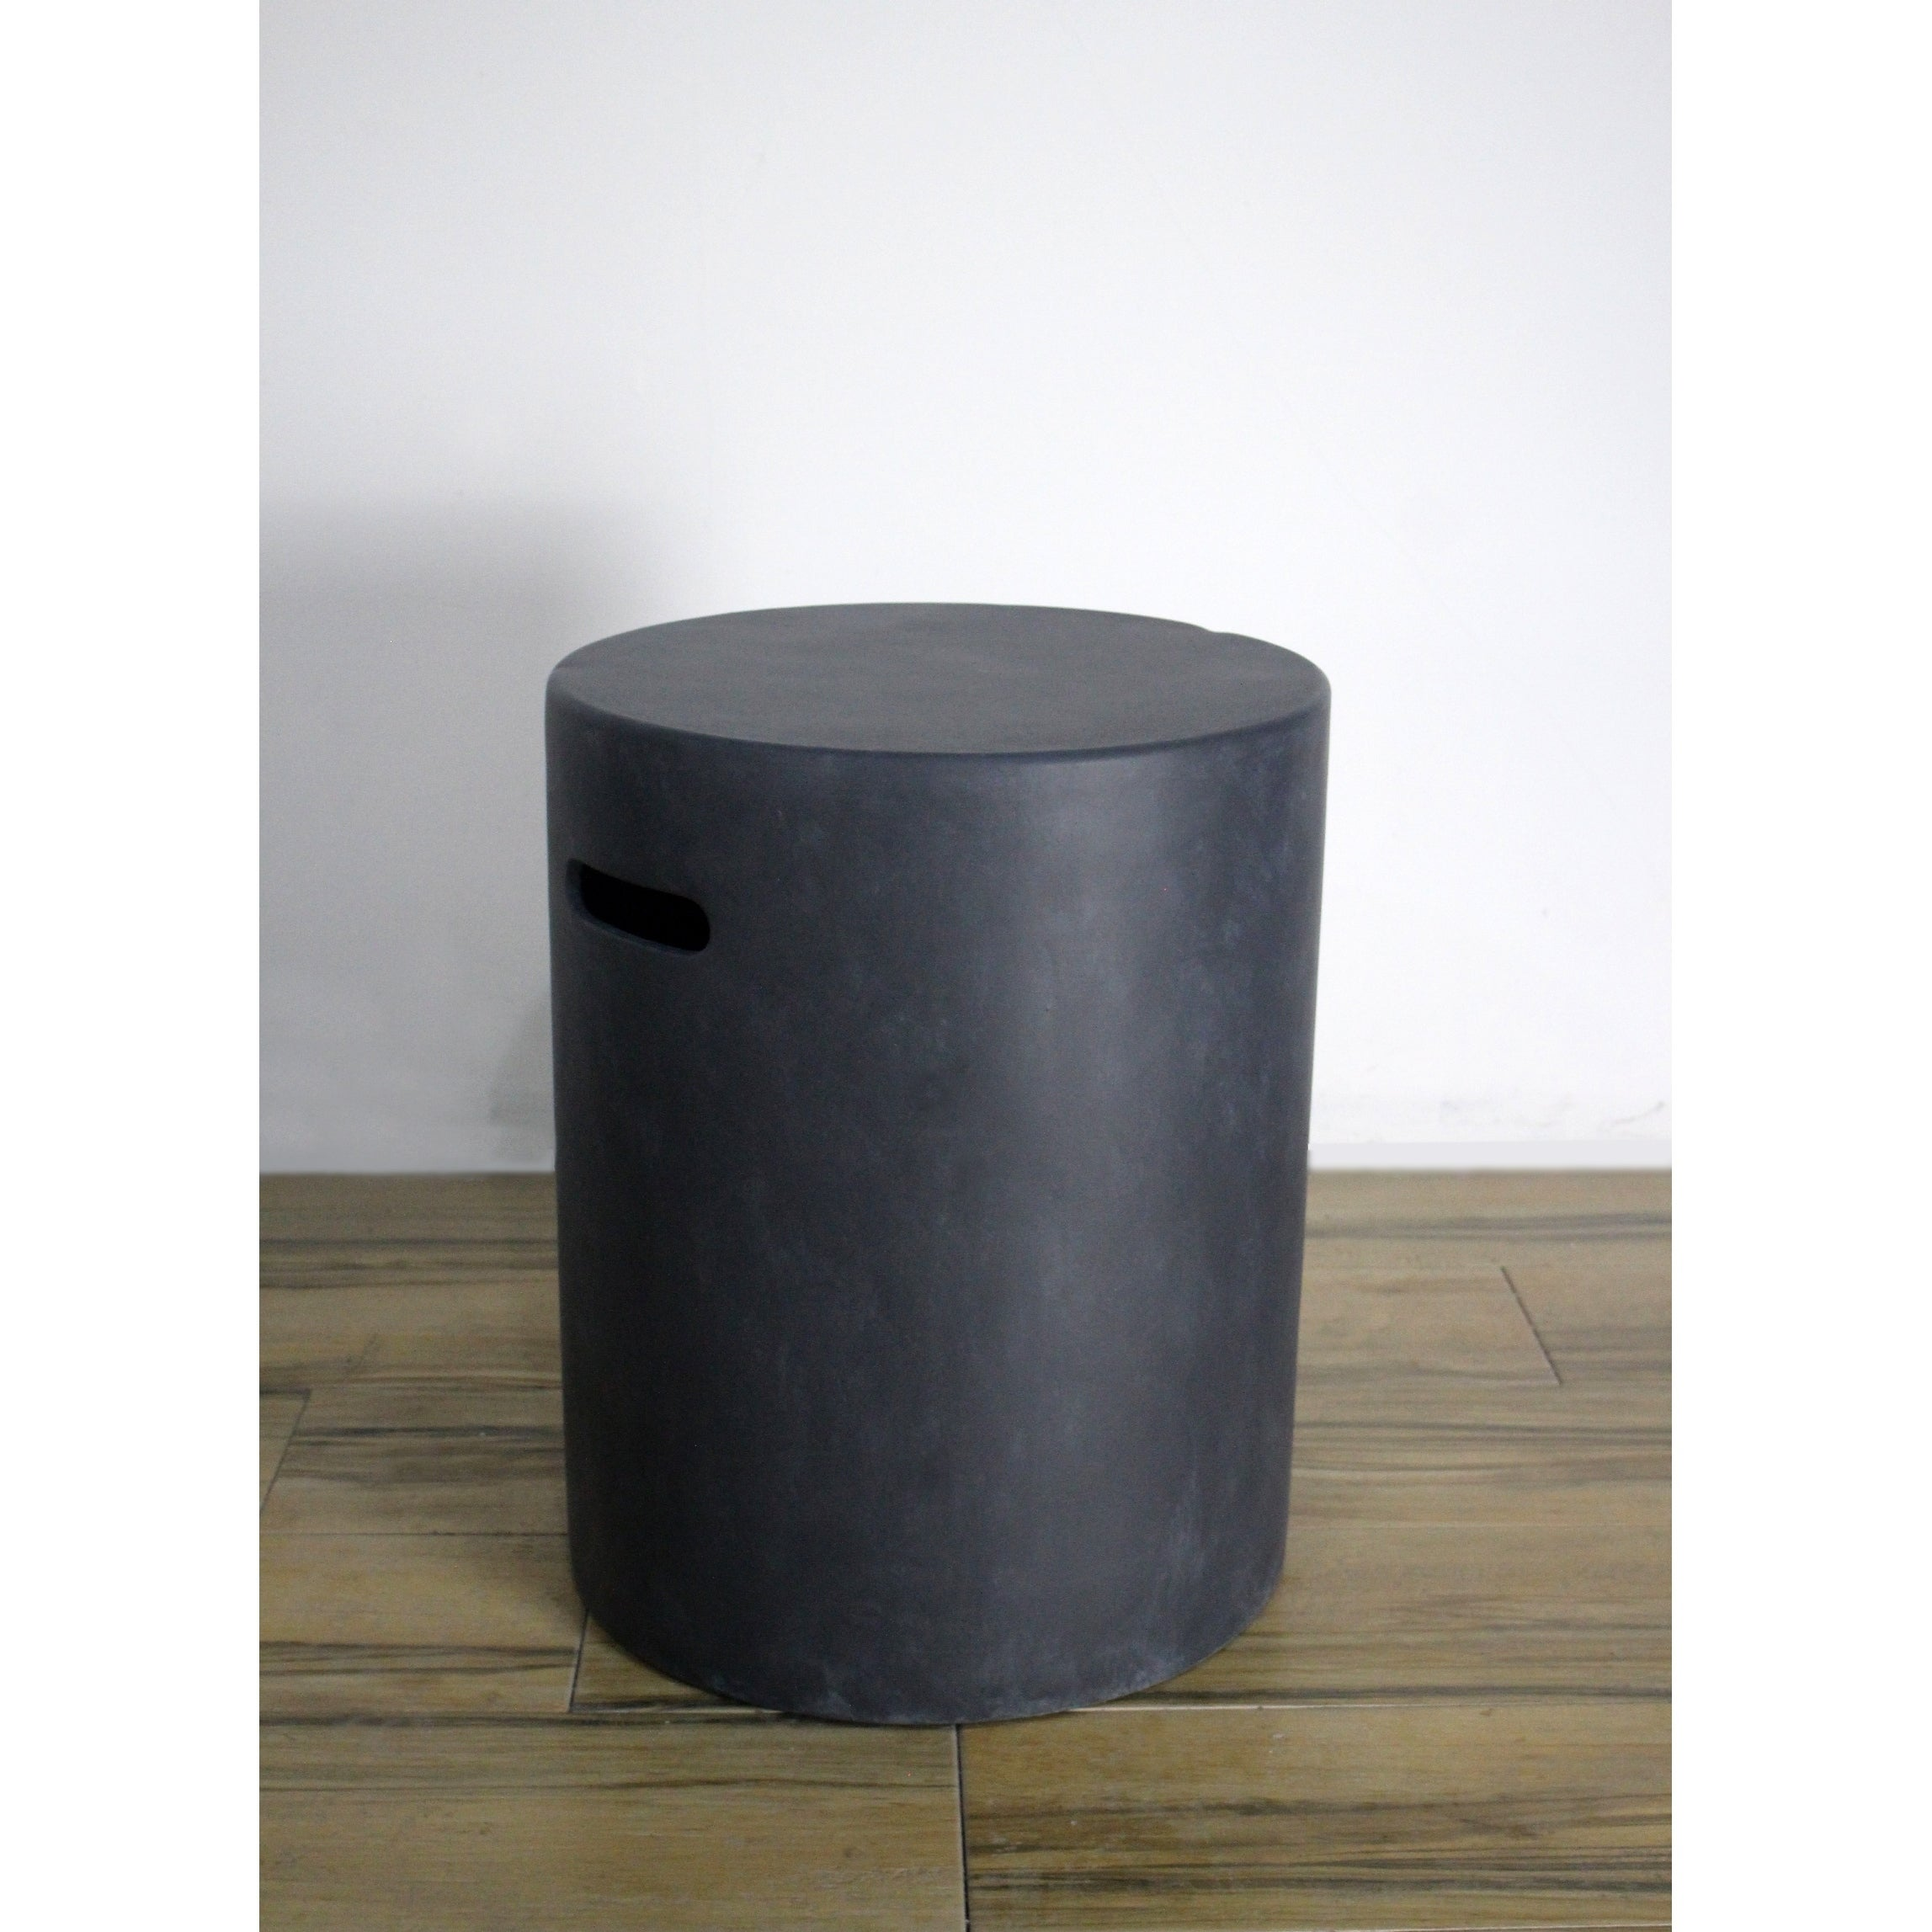 Elementi Lunar Bowl Fire Table Matched Black Round Tank Cover 20 H Overstock 29919540